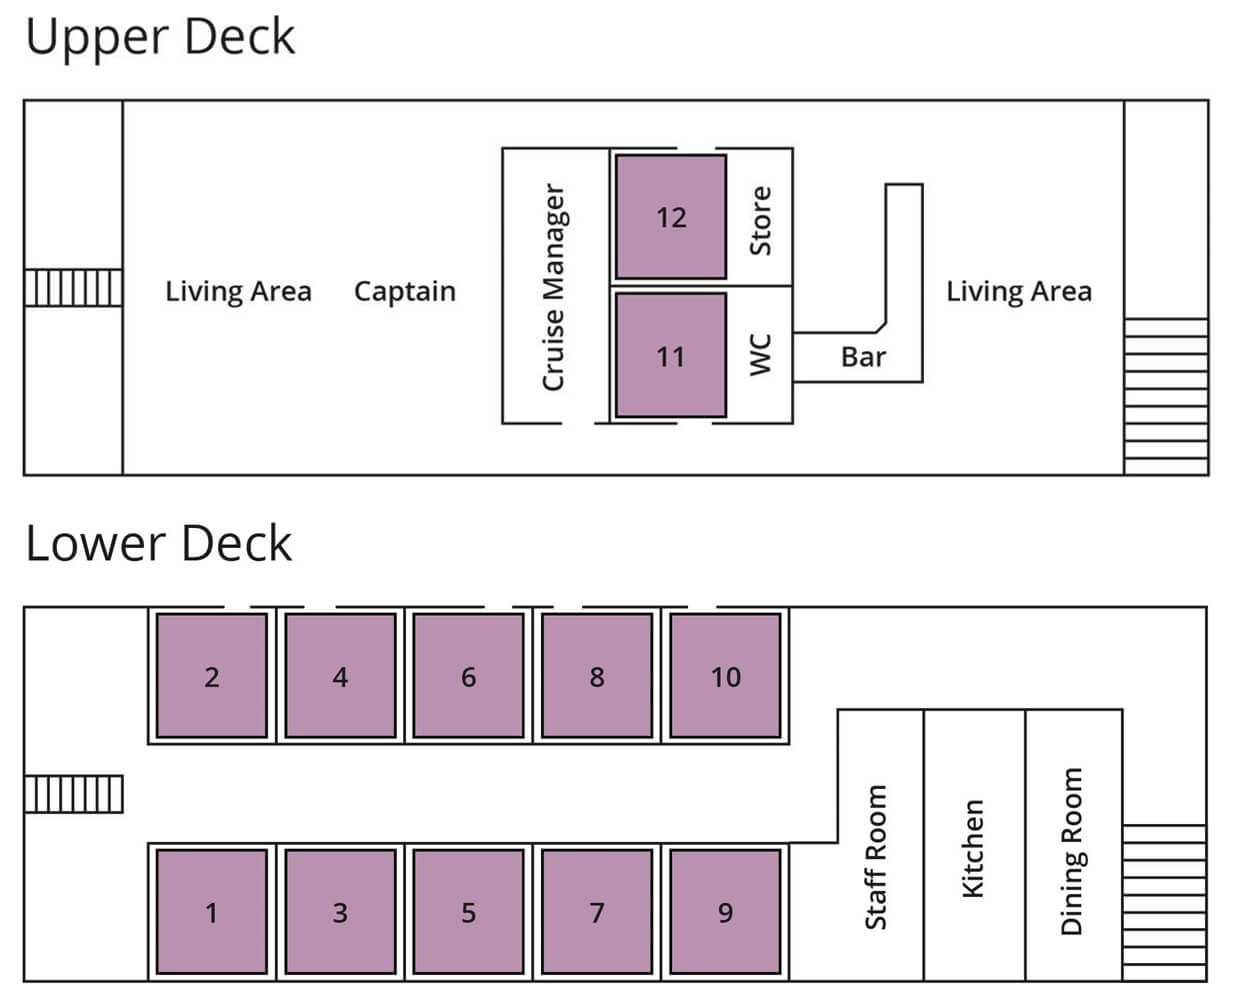 vat phou cruise deck plan